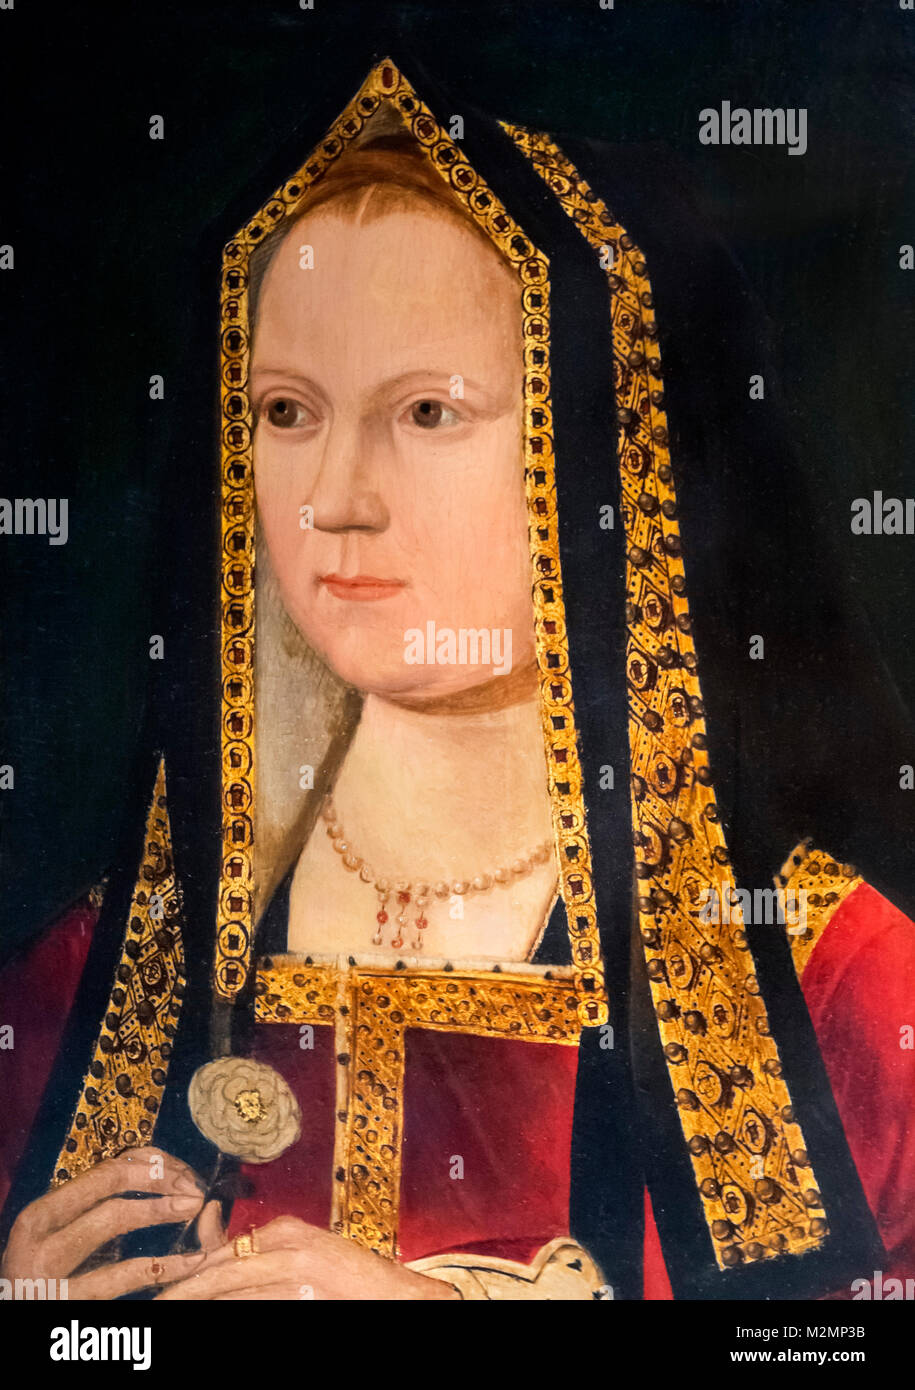 Elizabeth of York (1466-1503). Portrait of wife of King Henry VII and mother of King Henry VIII, unknown artist, Stock Photo